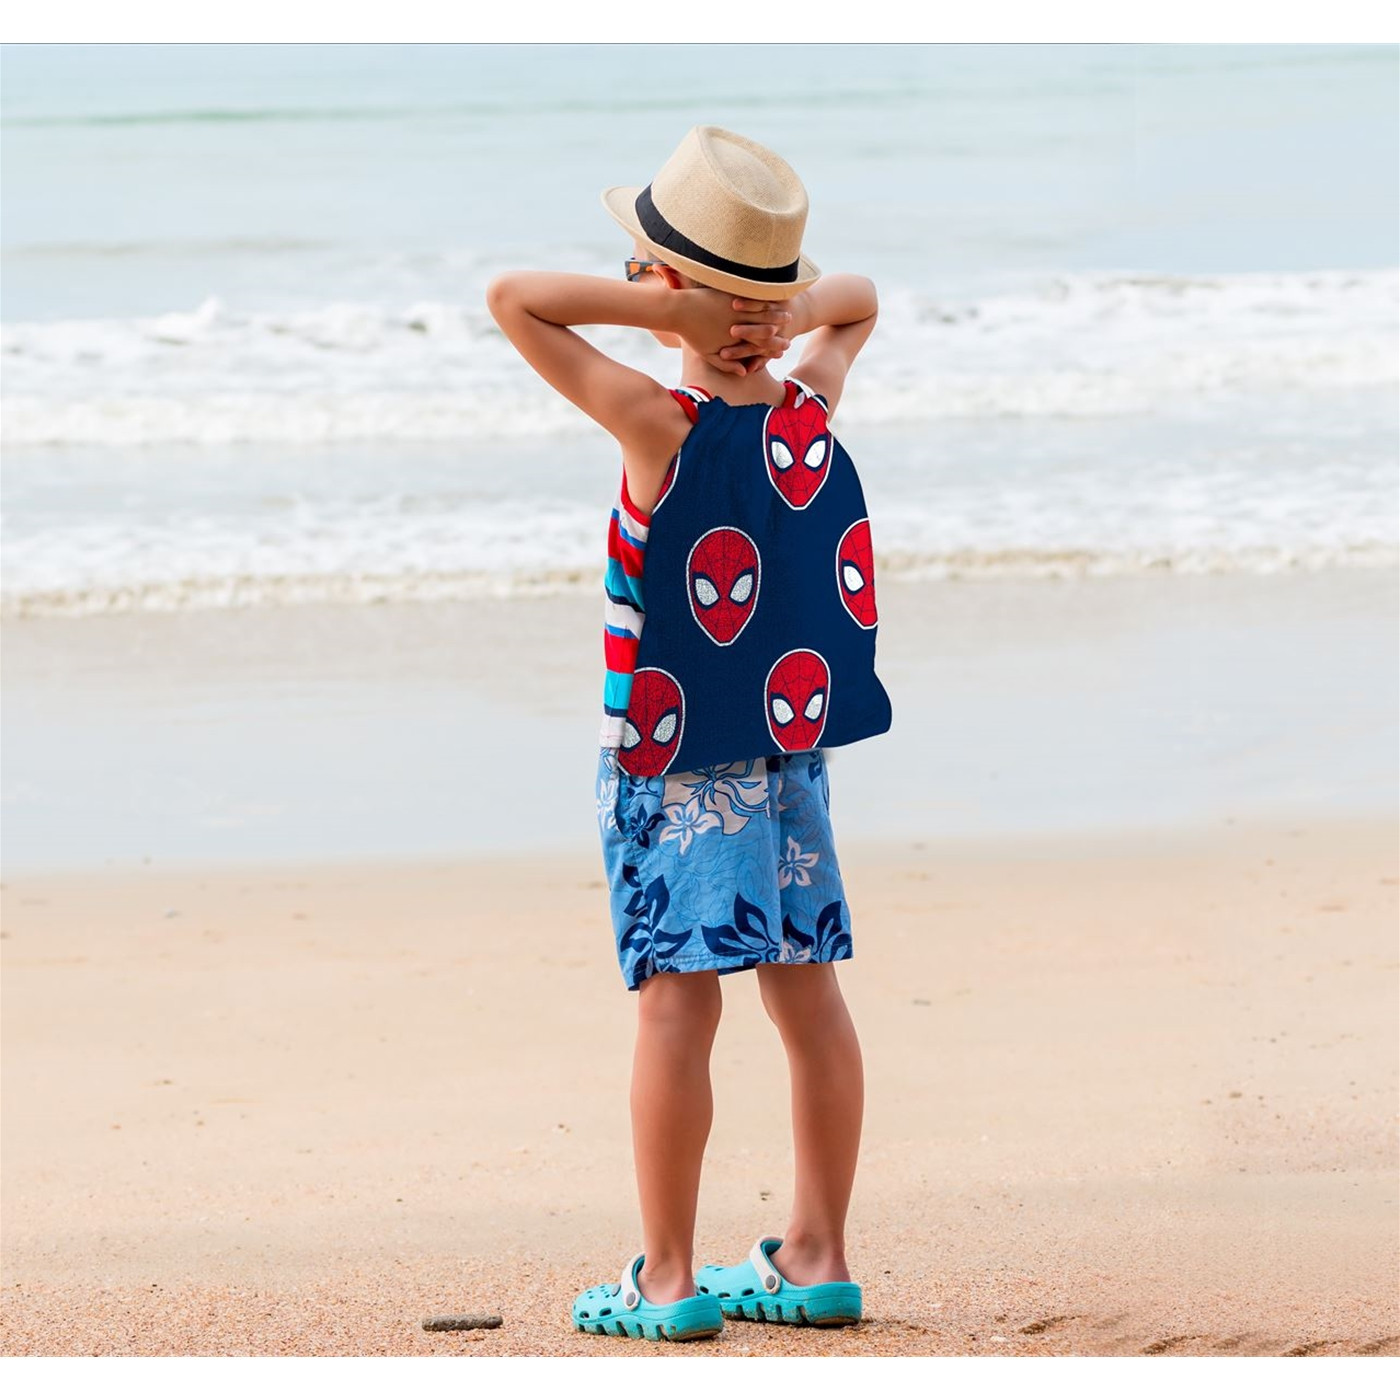 Spider-Man Beach Towel with Backpack